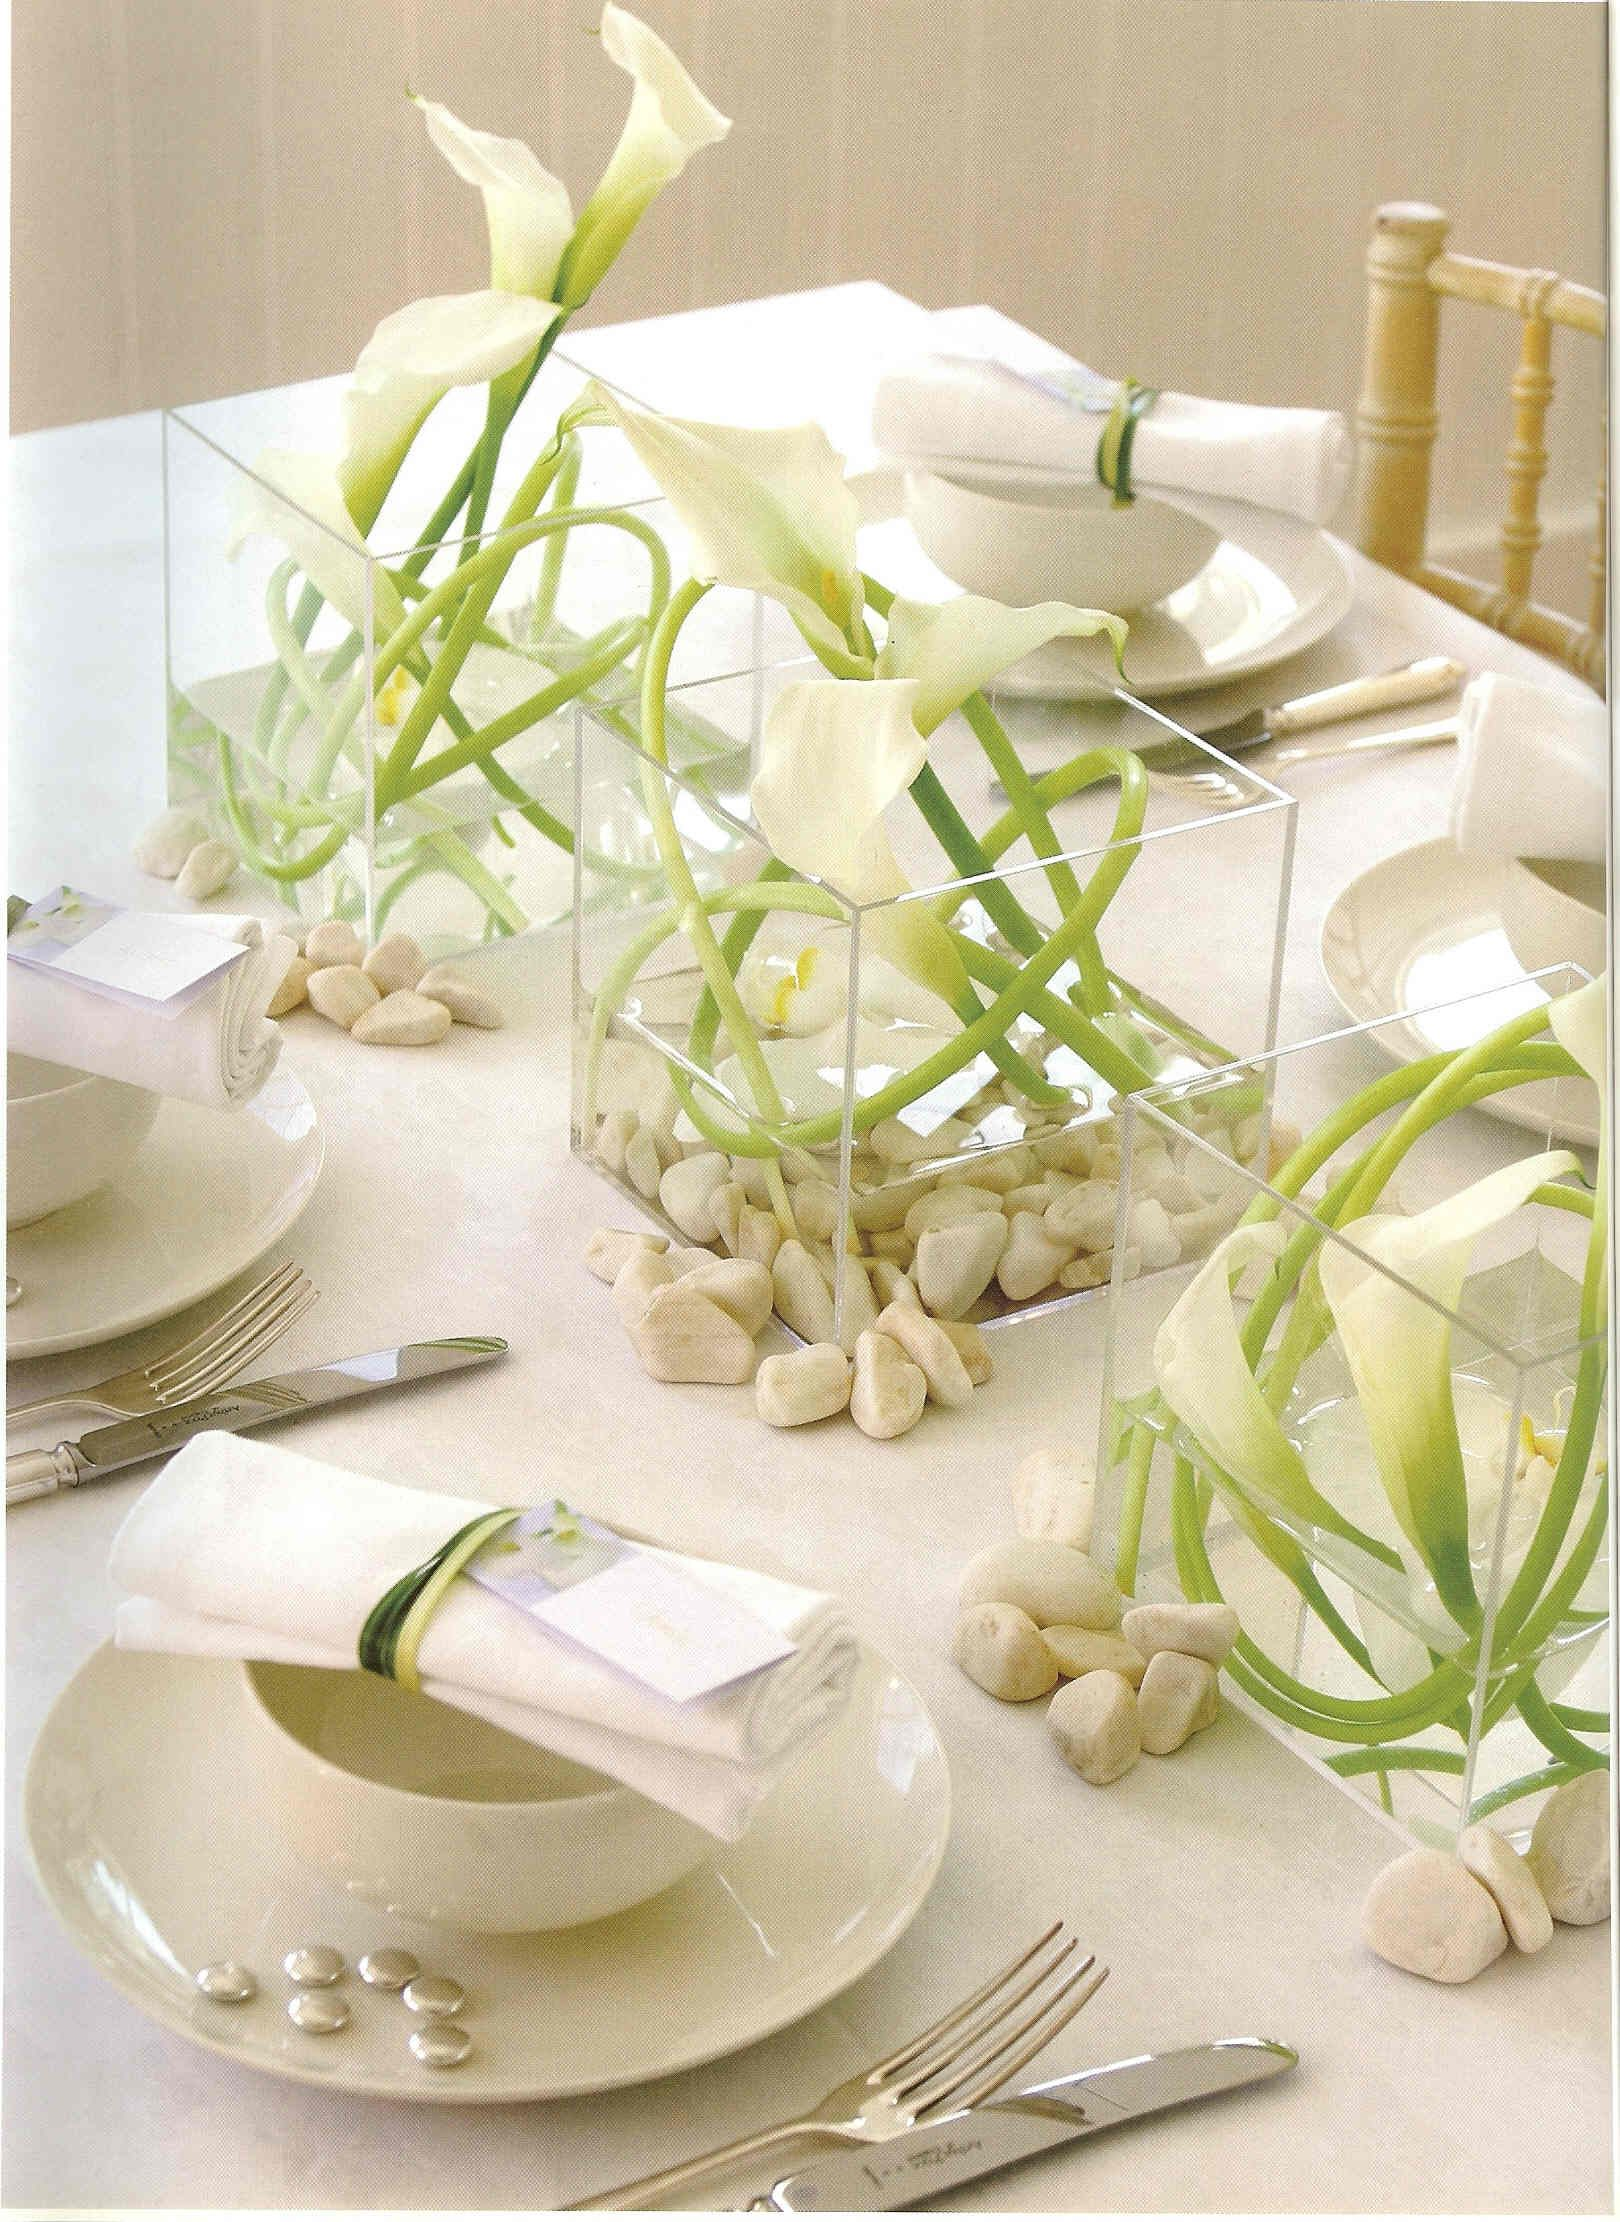 Top 35 Summer Wedding Table Décor Ideas To Impress Your Guests ...